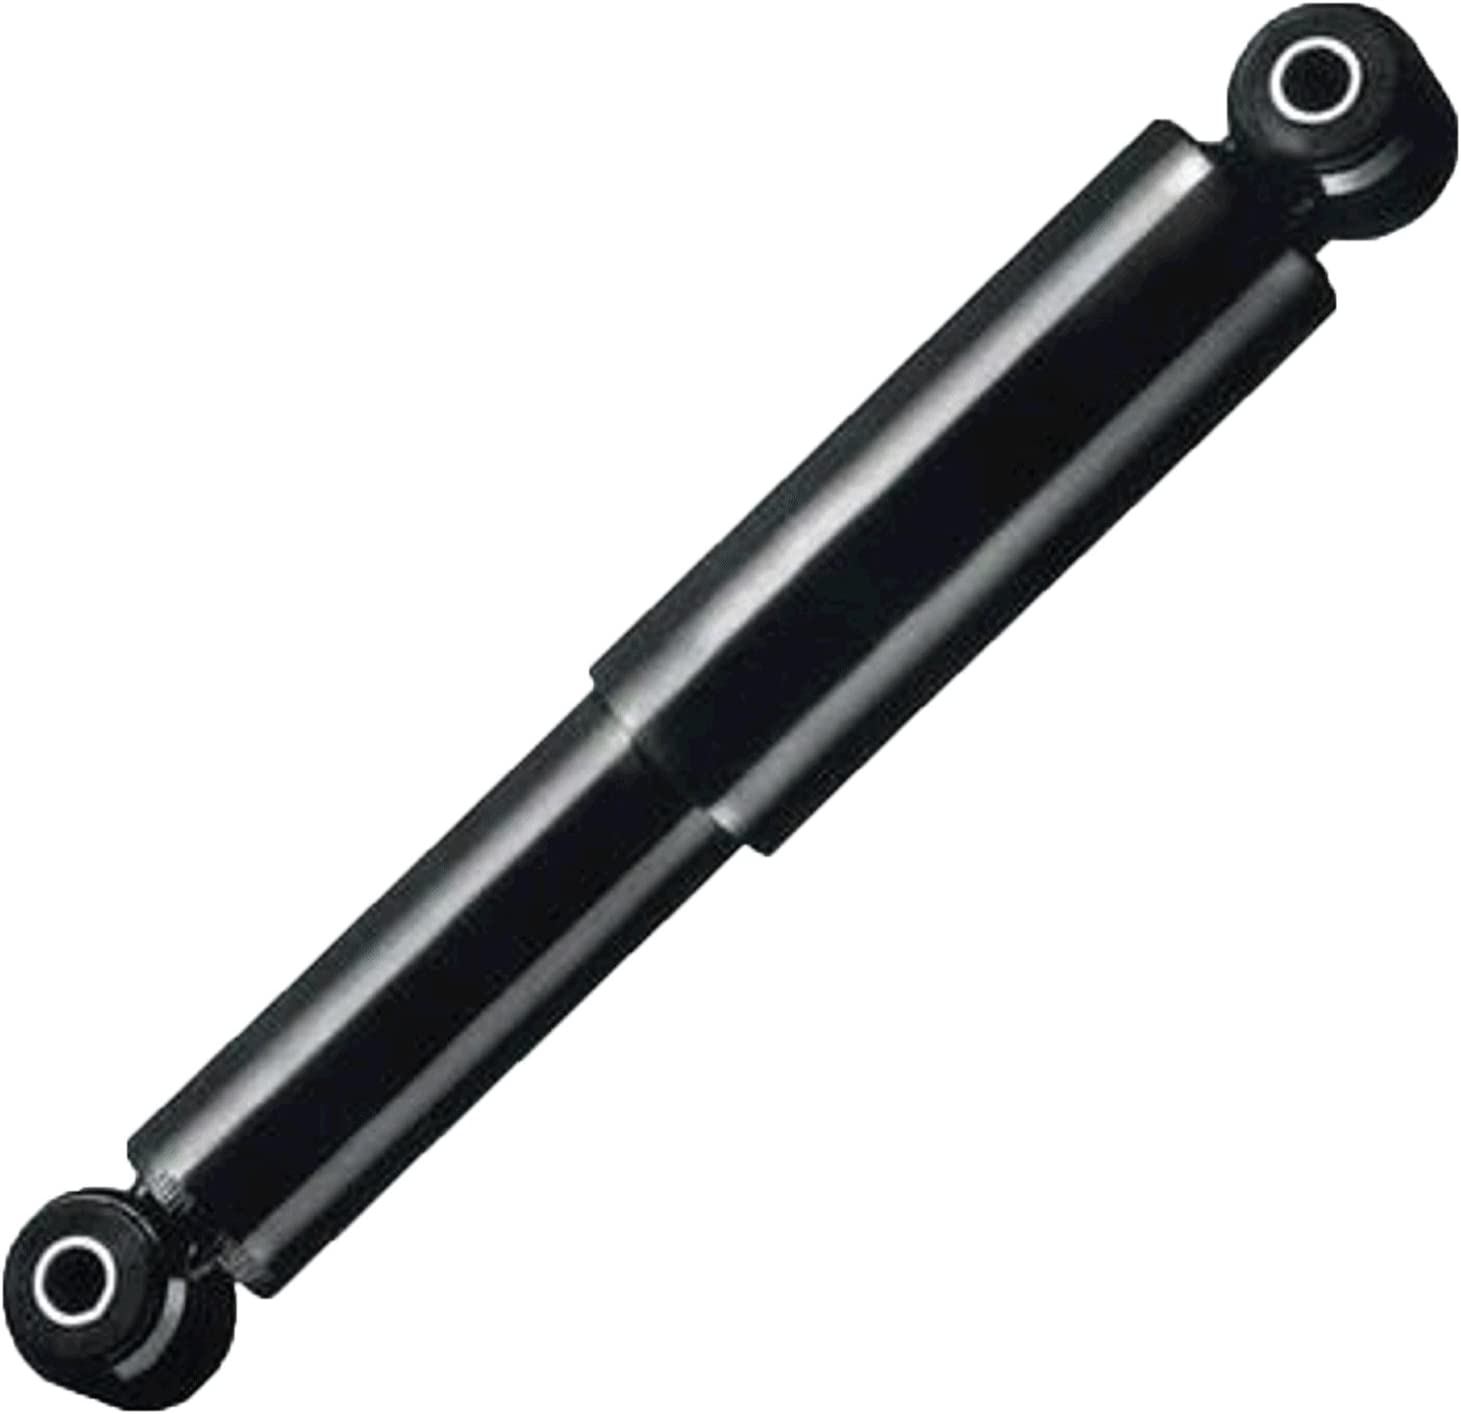 KYB 349079 Rear Gas Shock Absorber Pack of 1